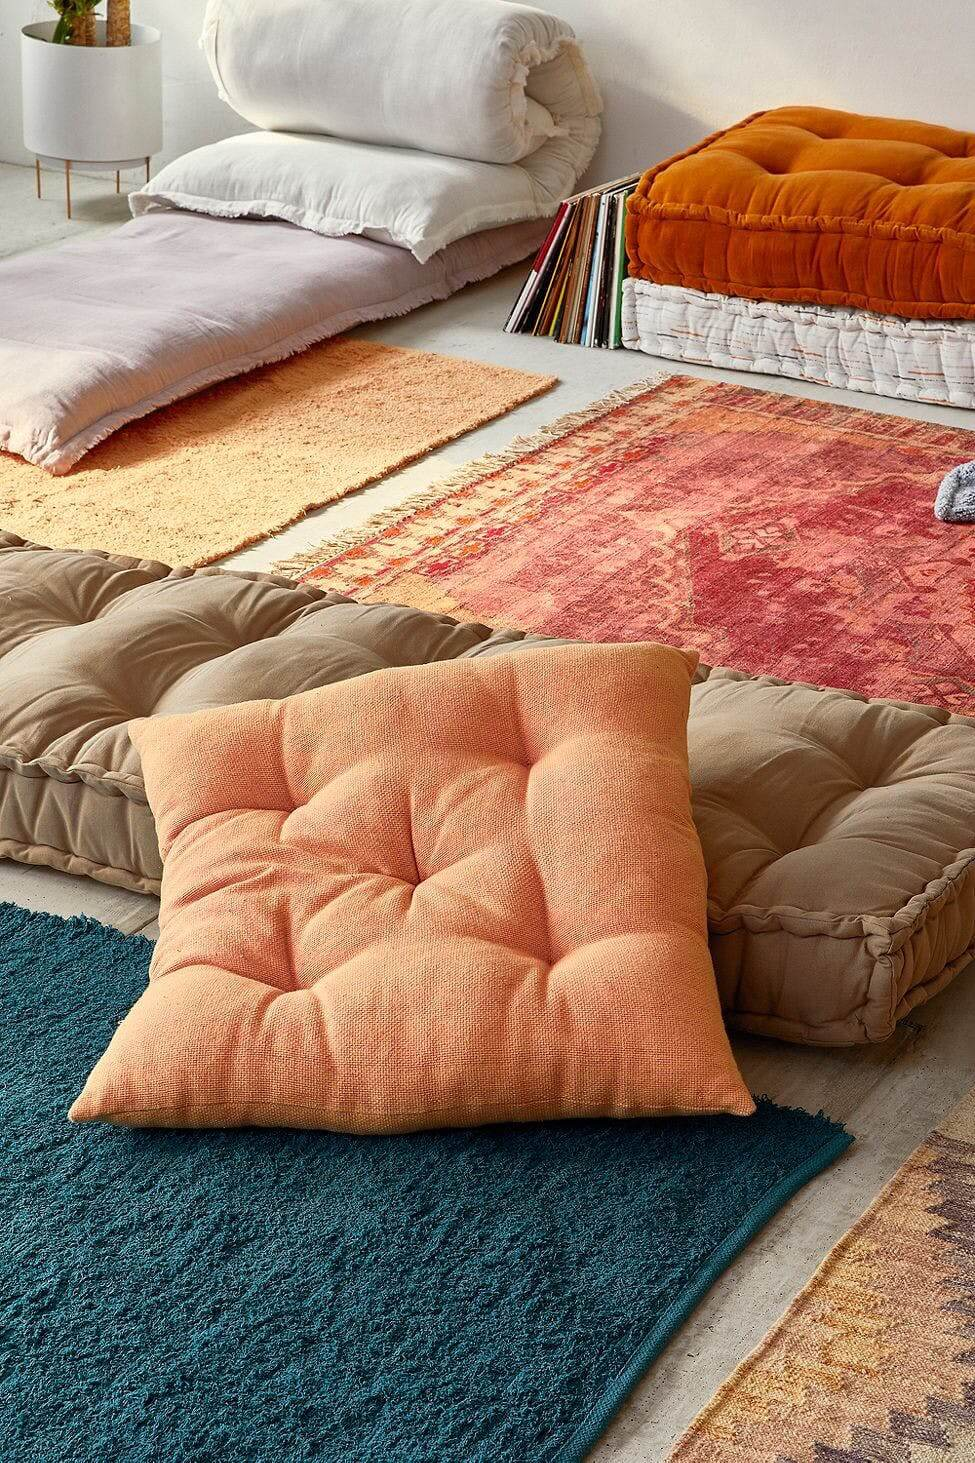 All the Soft Pillows